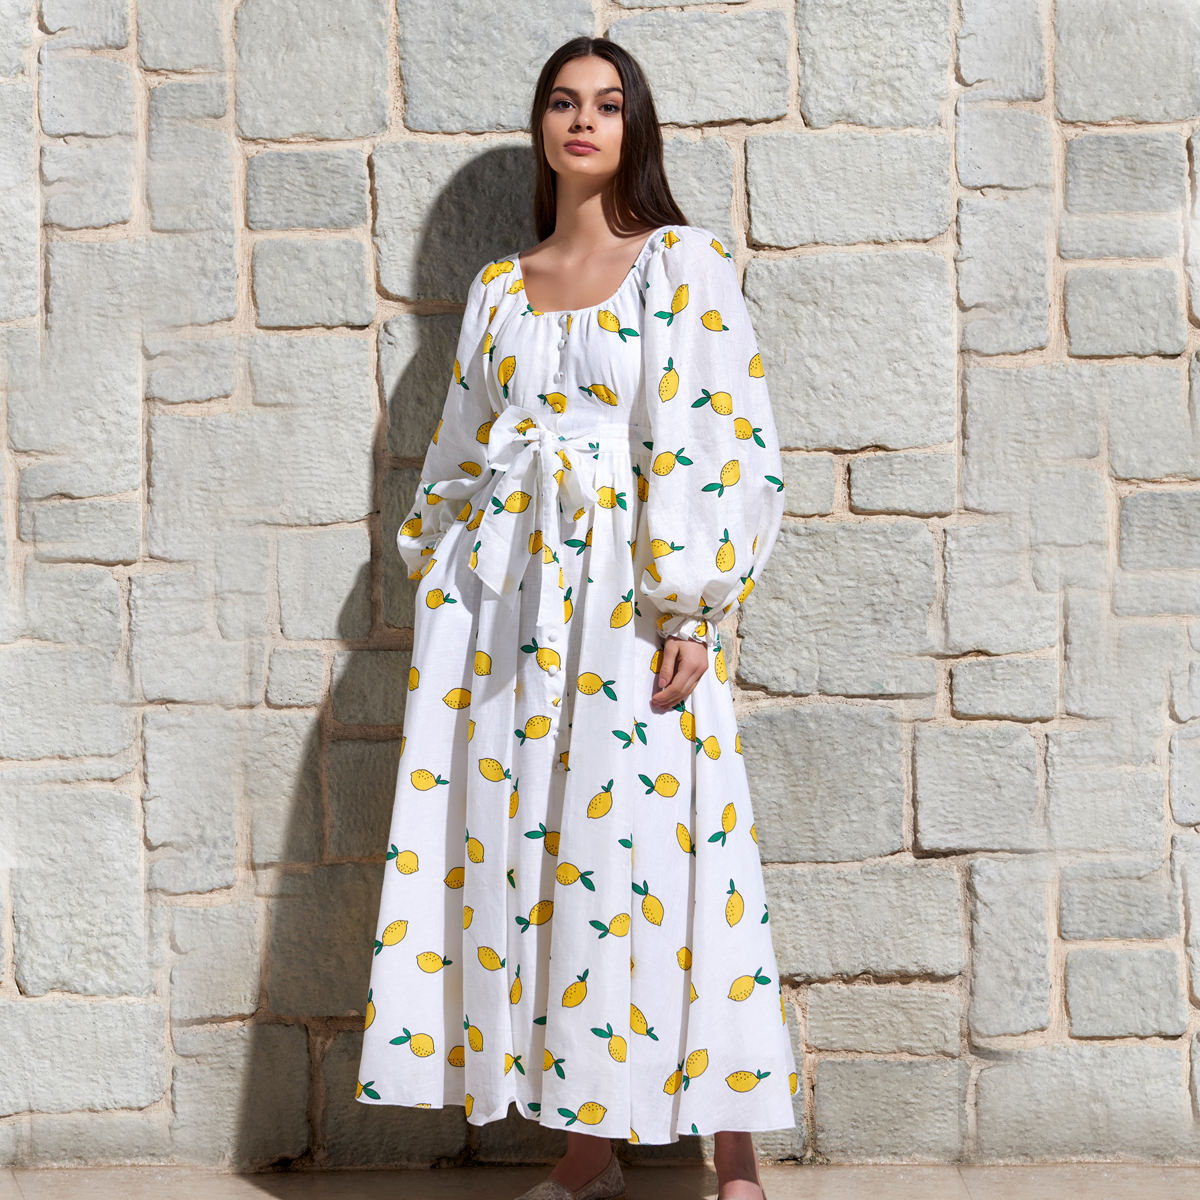 Gul Hurgel Women's Peasant Sleeve Dress in White with Lemons on woman